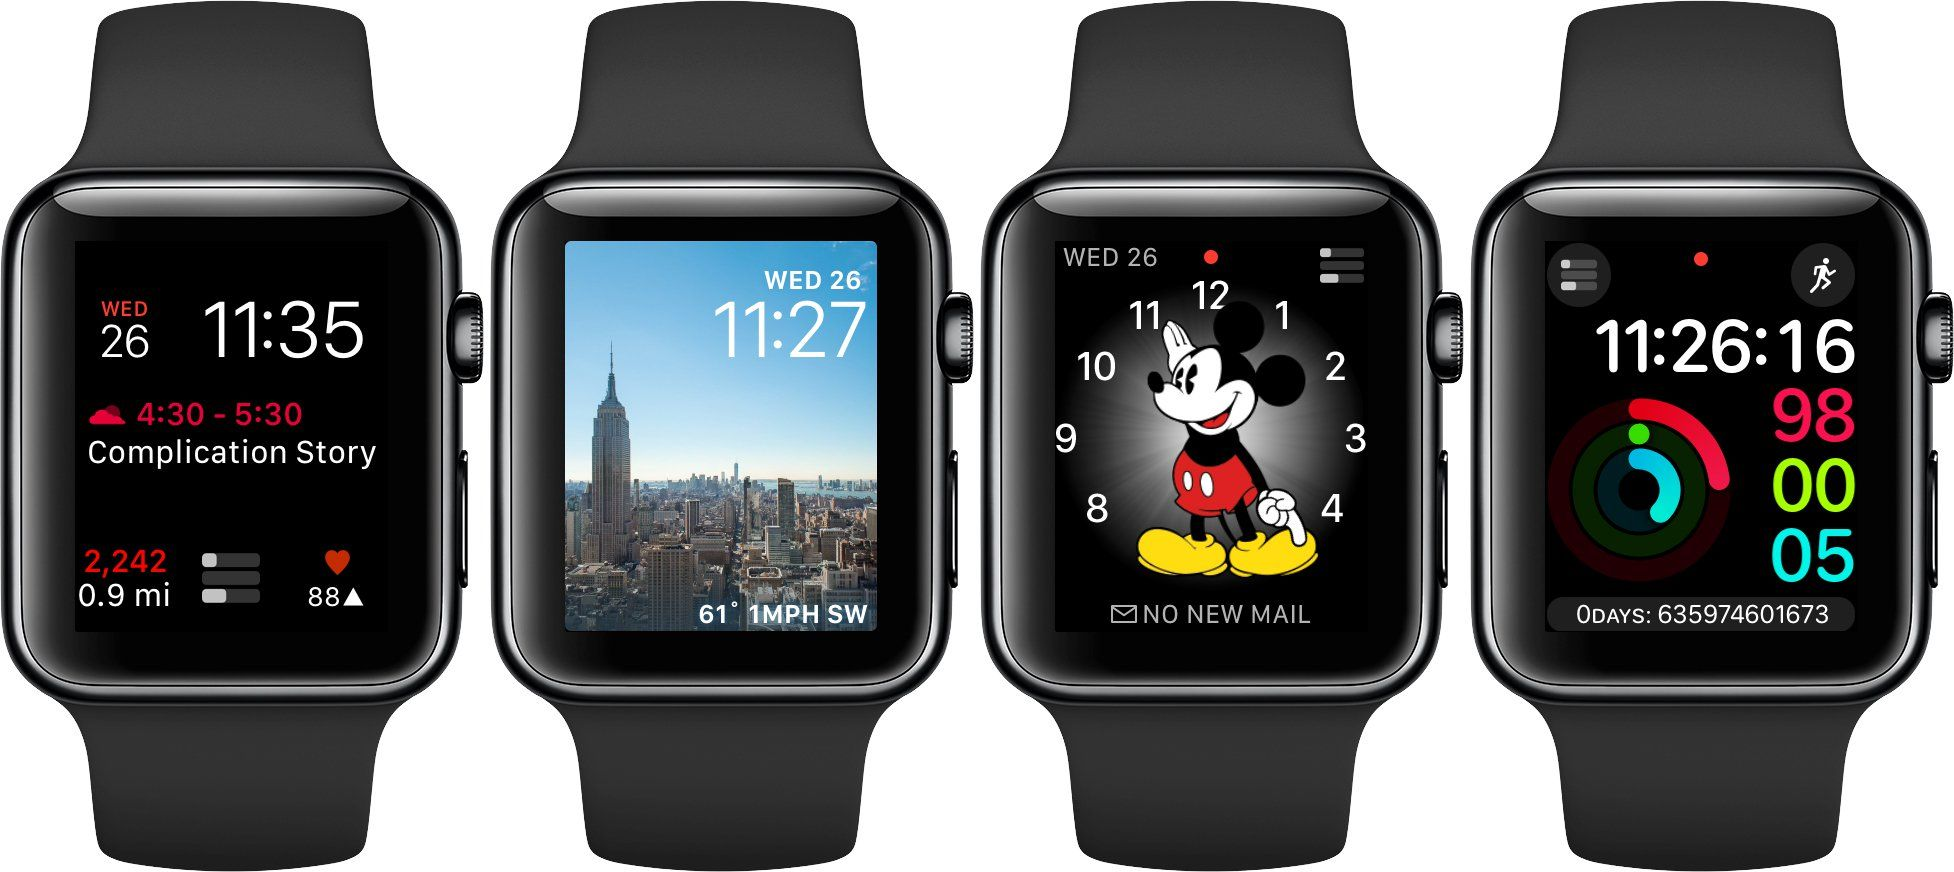 7 Great ThirdParty Apple Watch Complications Apple